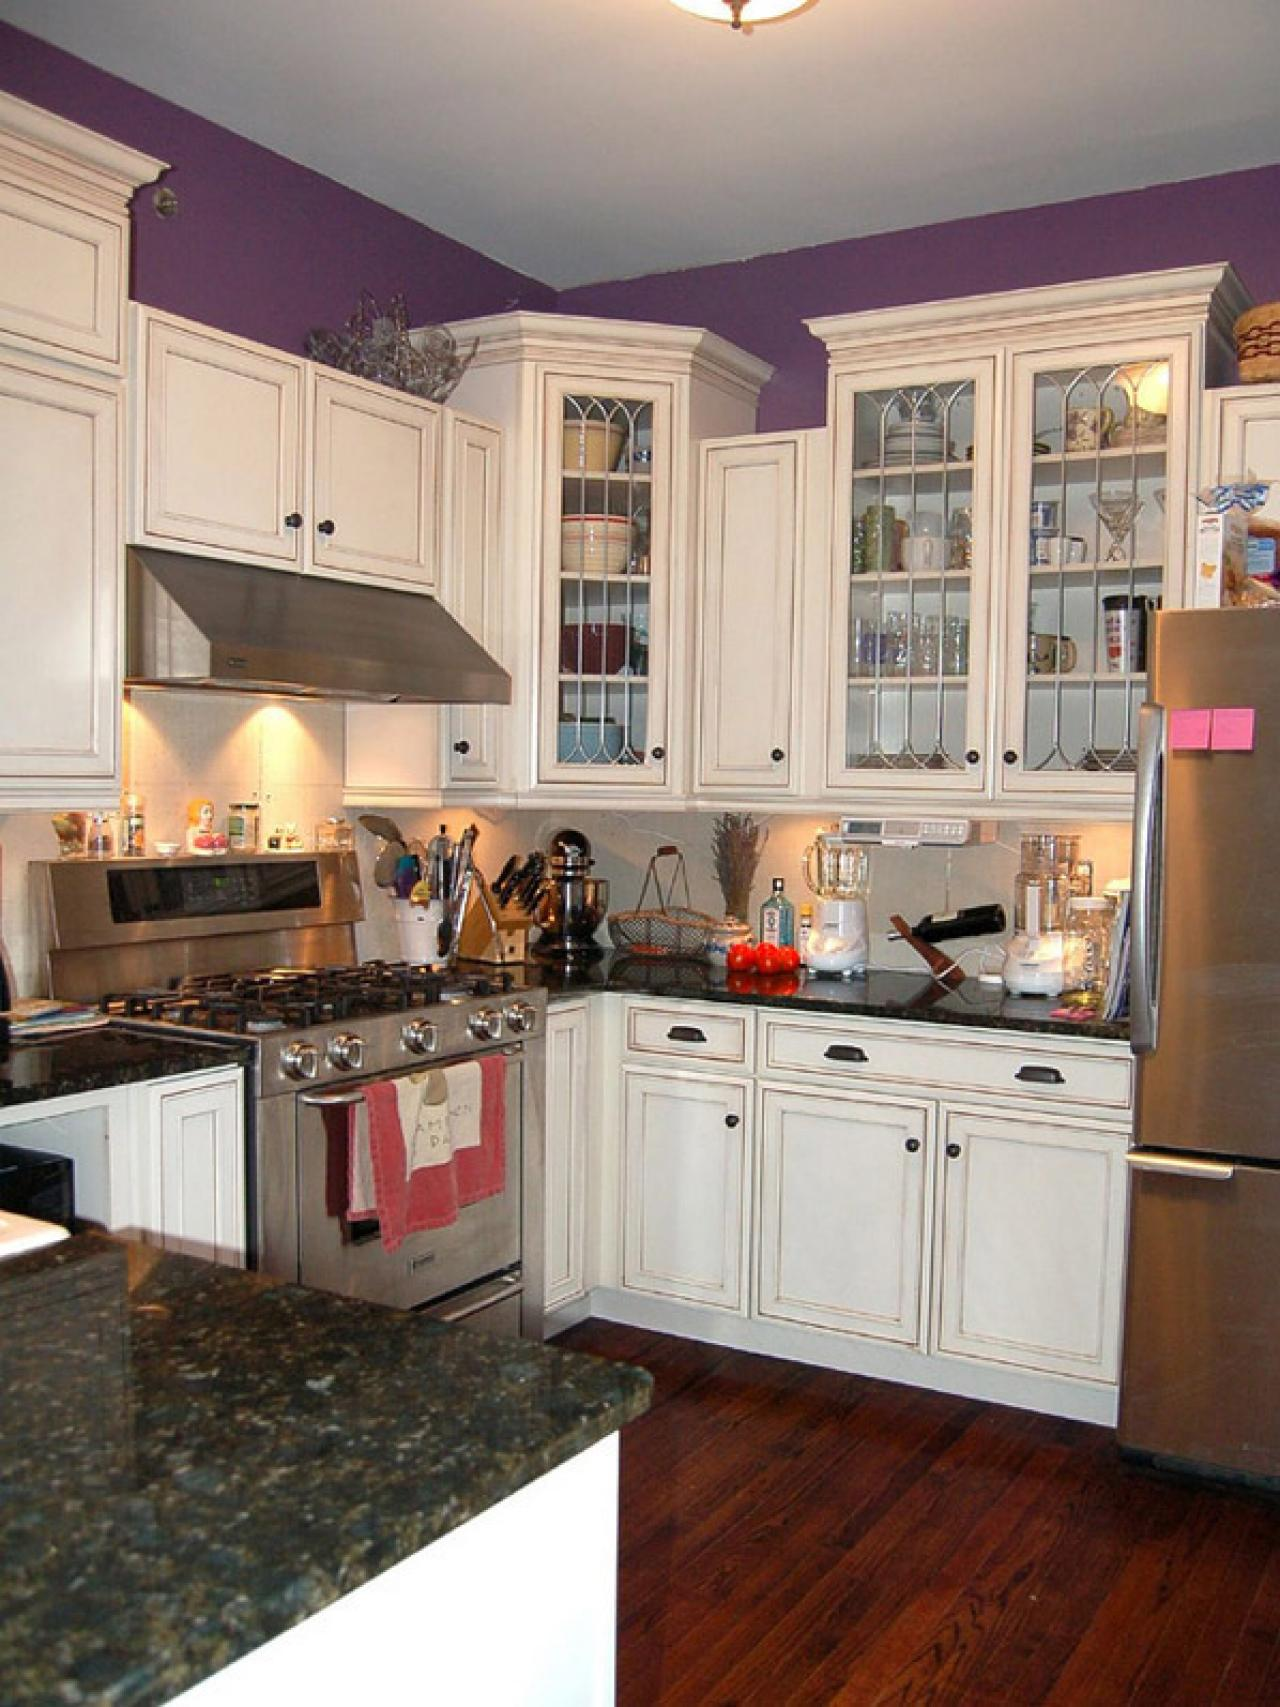 Kitchen Decorating Classy Small Kitchen Design Pictures Ideas & Tips From Hgtv  Hgtv Design Inspiration